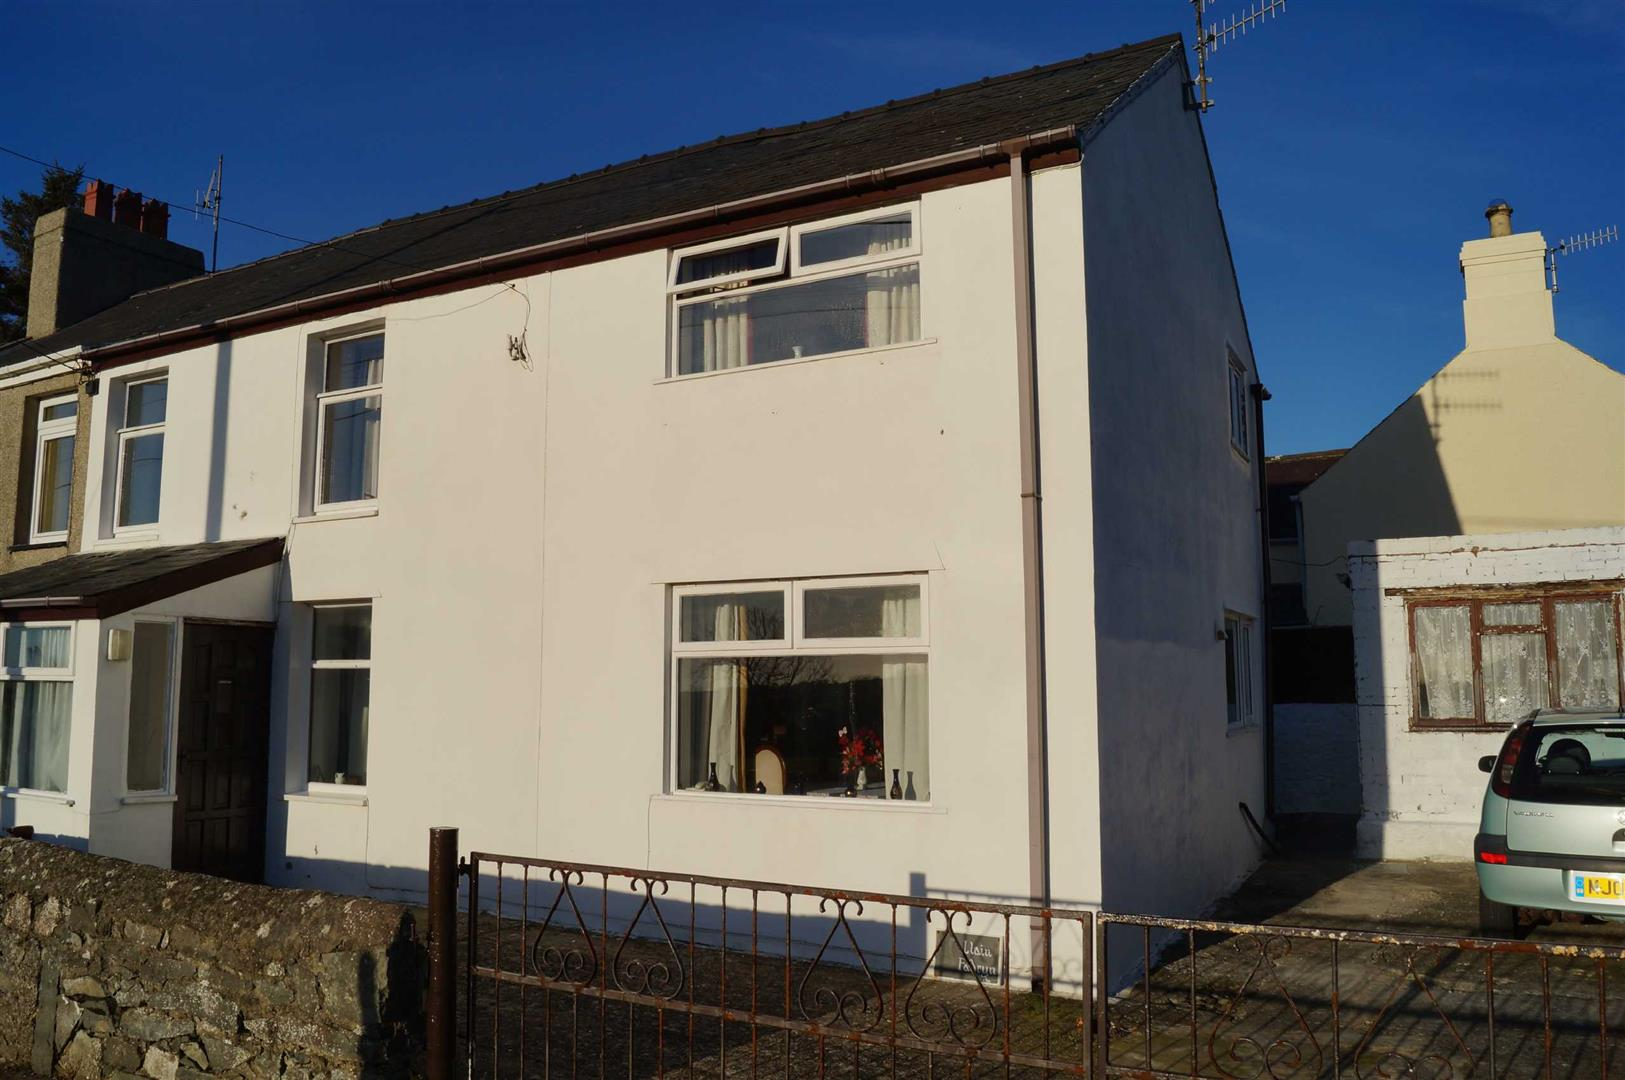 Cefn Morfa, Morfa Nefyn - £189,000/Reduced to